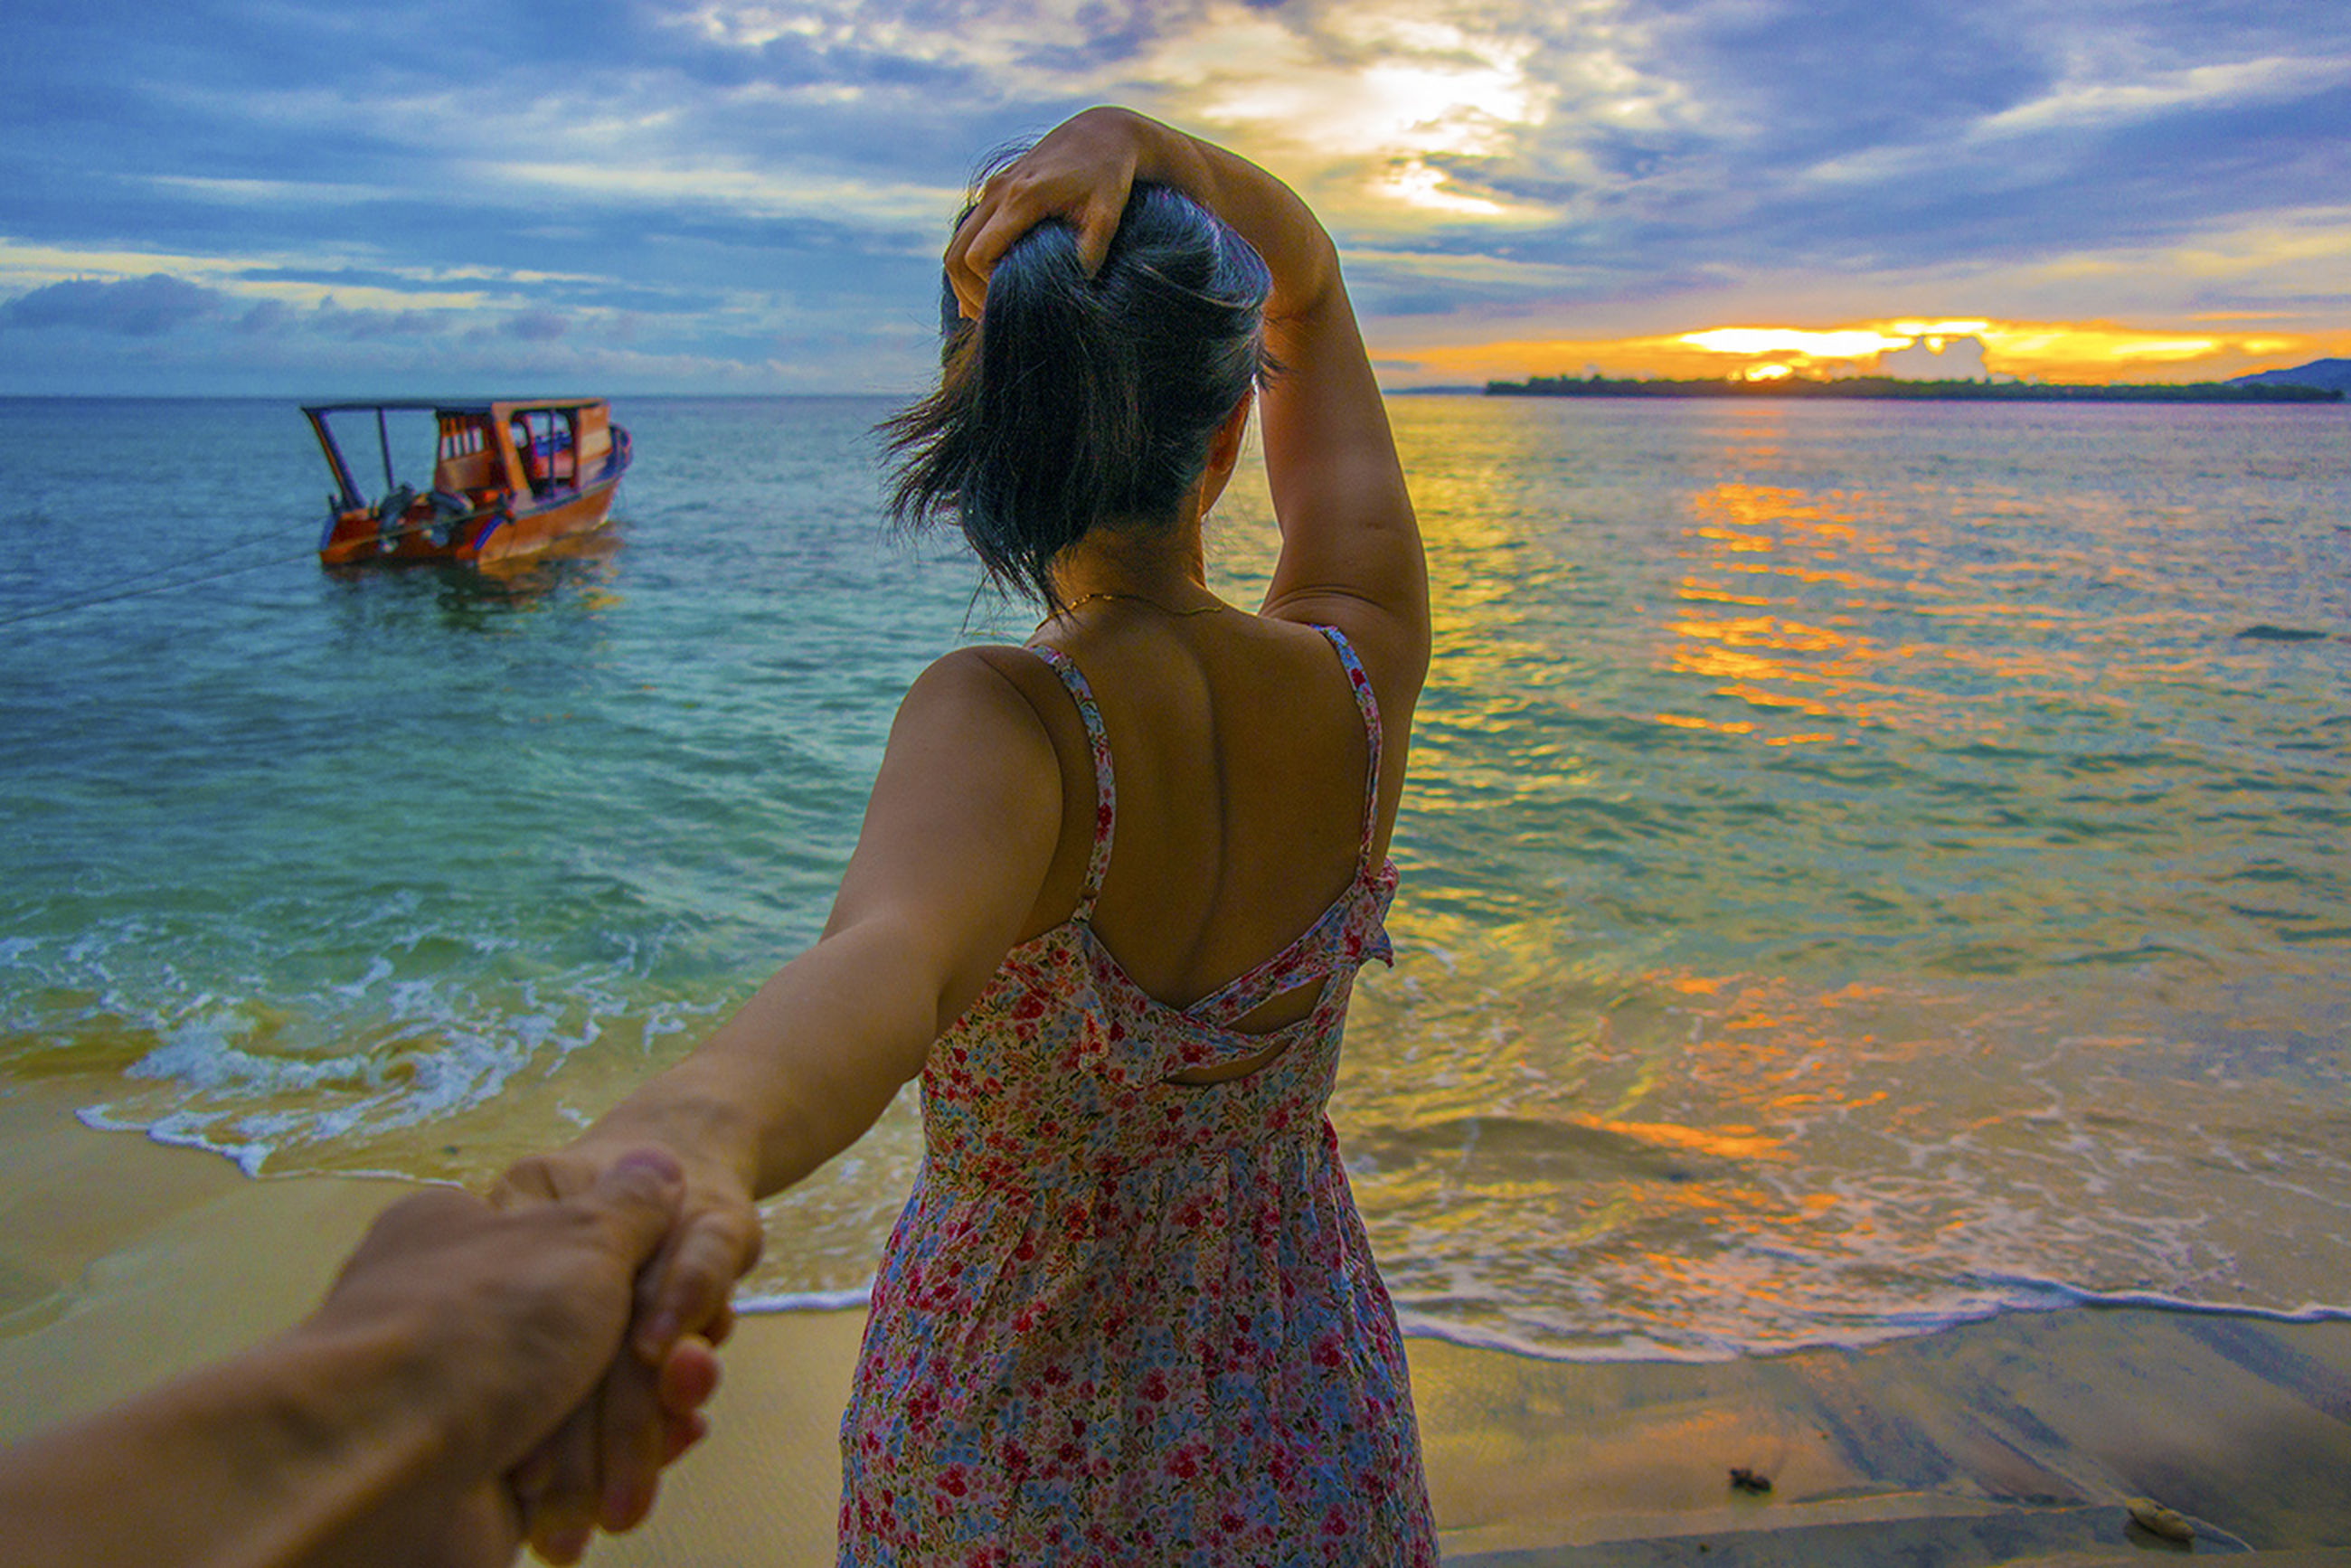 sea, water, lifestyles, leisure activity, beach, sky, horizon over water, vacations, shore, cloud - sky, sitting, sunset, person, weekend activities, scenics, enjoyment